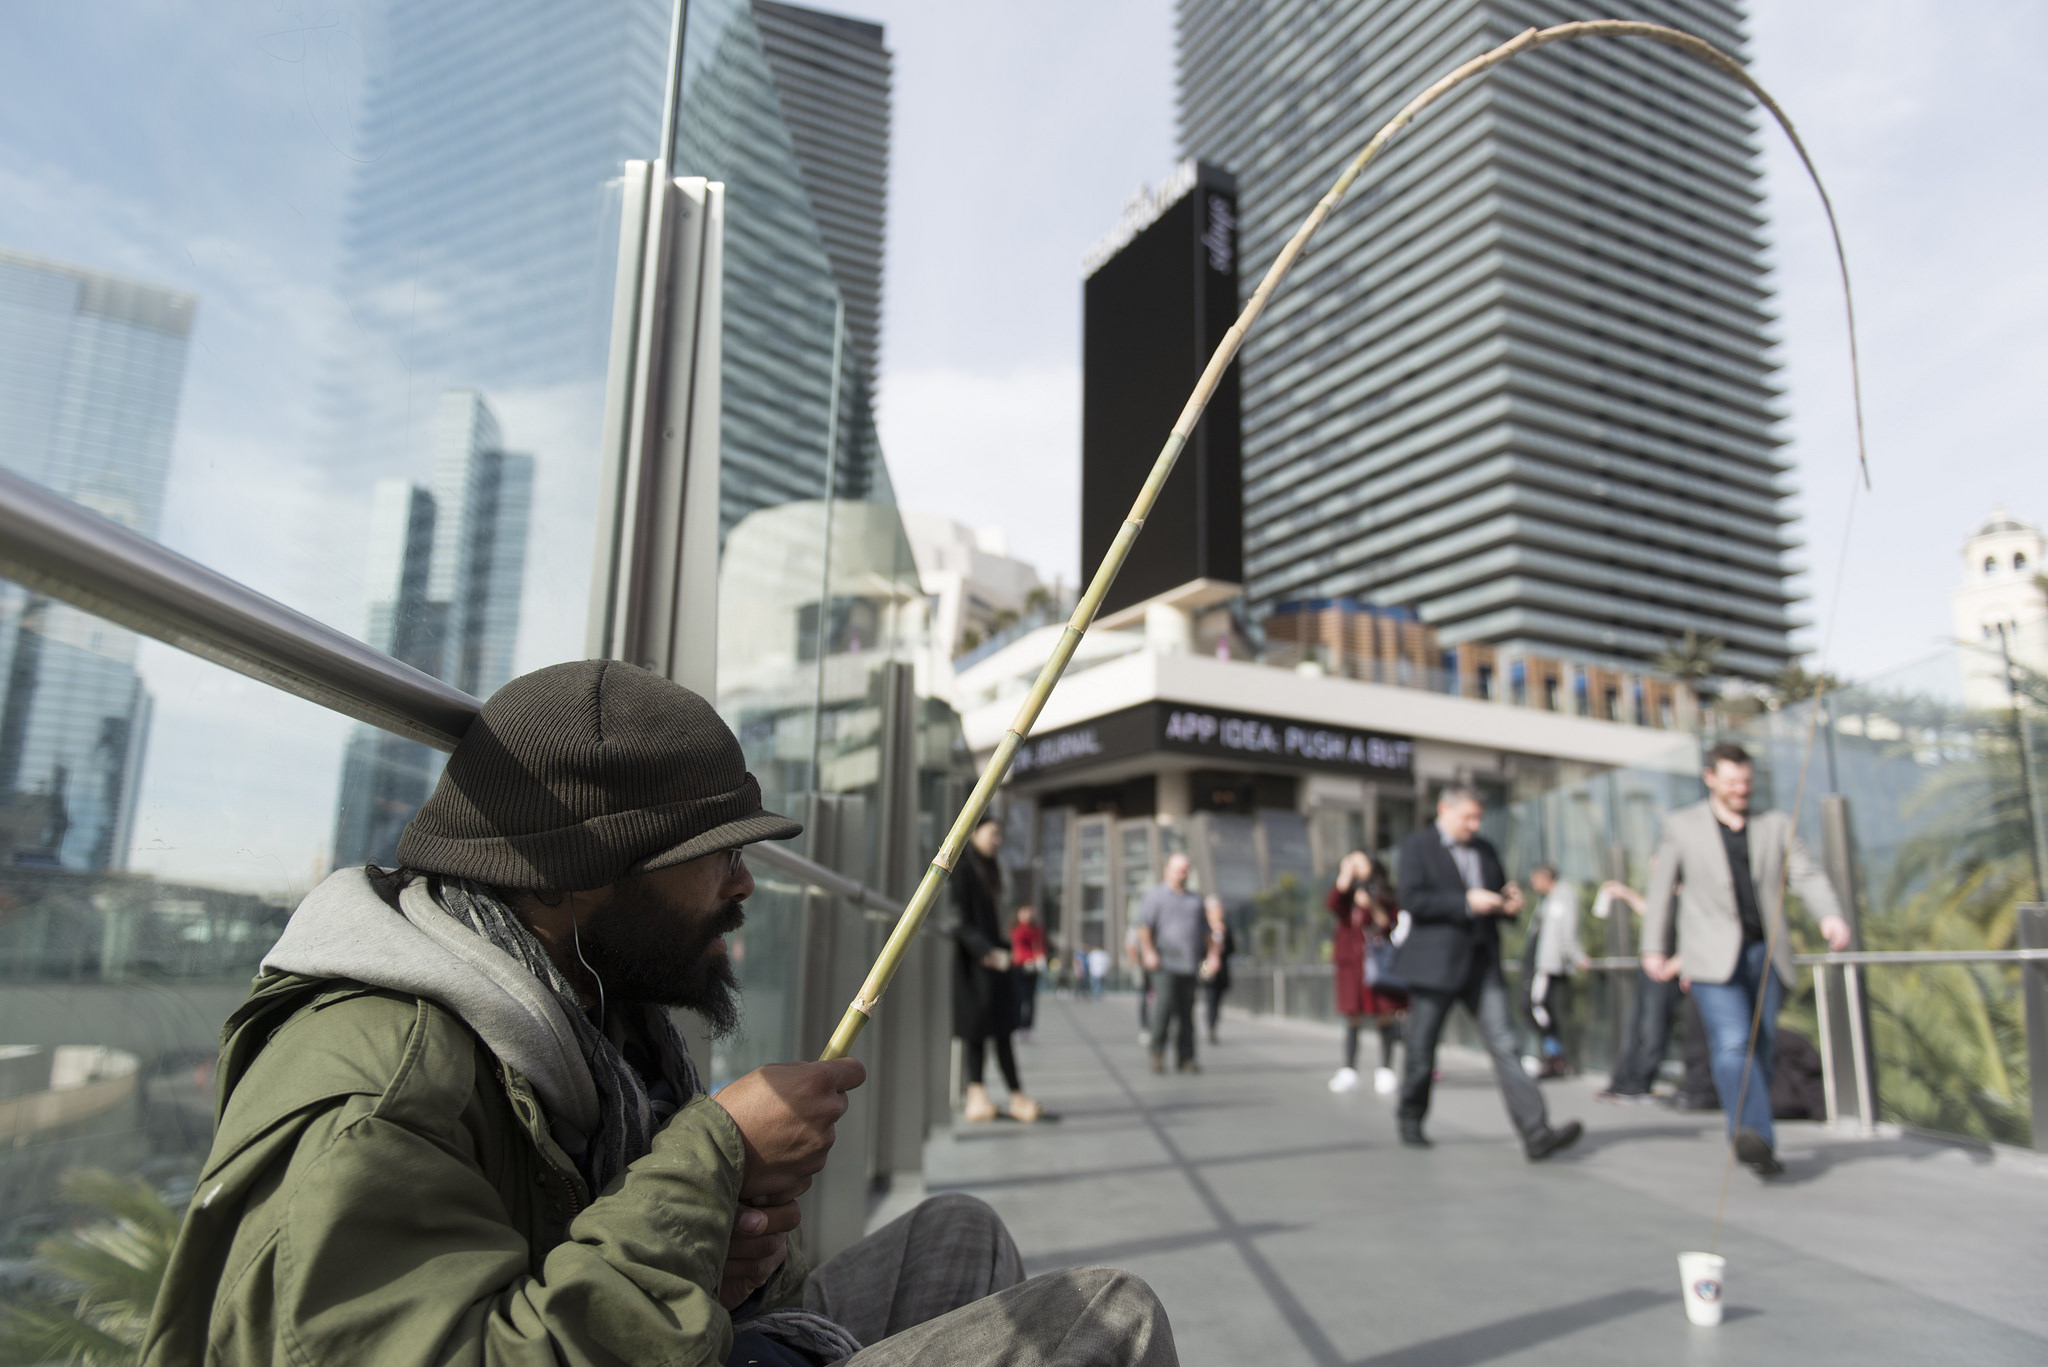 Clarence Witzel panhandles using a set up meant to mimic a fishing rod on a pedestrian overpass at Las Vegas Boulevard and Harmon Avenue in Las Vegas Thursday, Jan. 21, 2016. Jason Ogulnik/Las Vegas Review-Journal